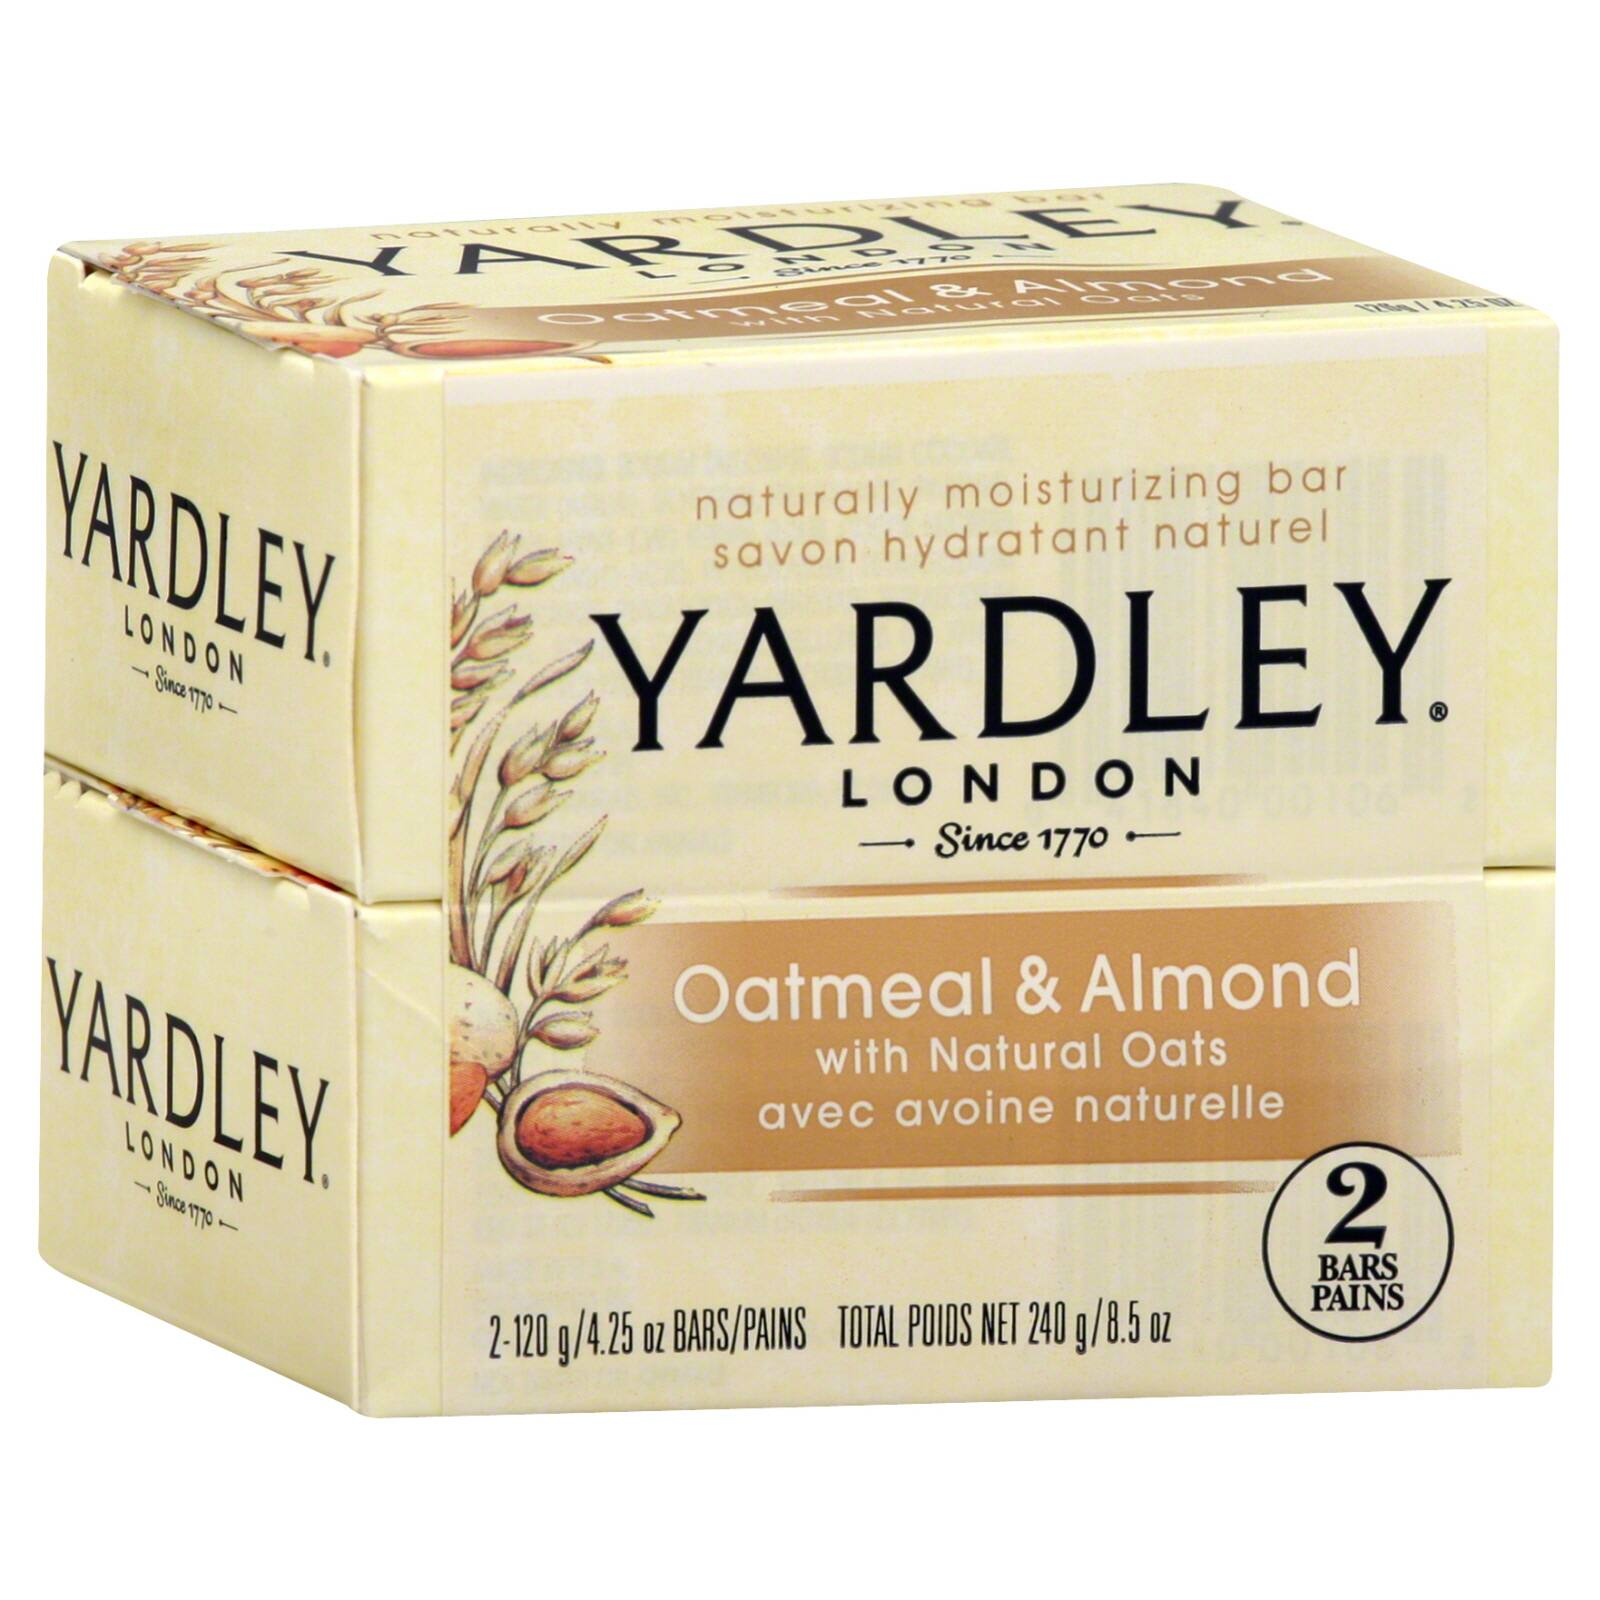 2 Pack Yardley London Oatmeal and Almond Bath Soap 4.25 oz Bar $1.80 w/ Prime Shipping